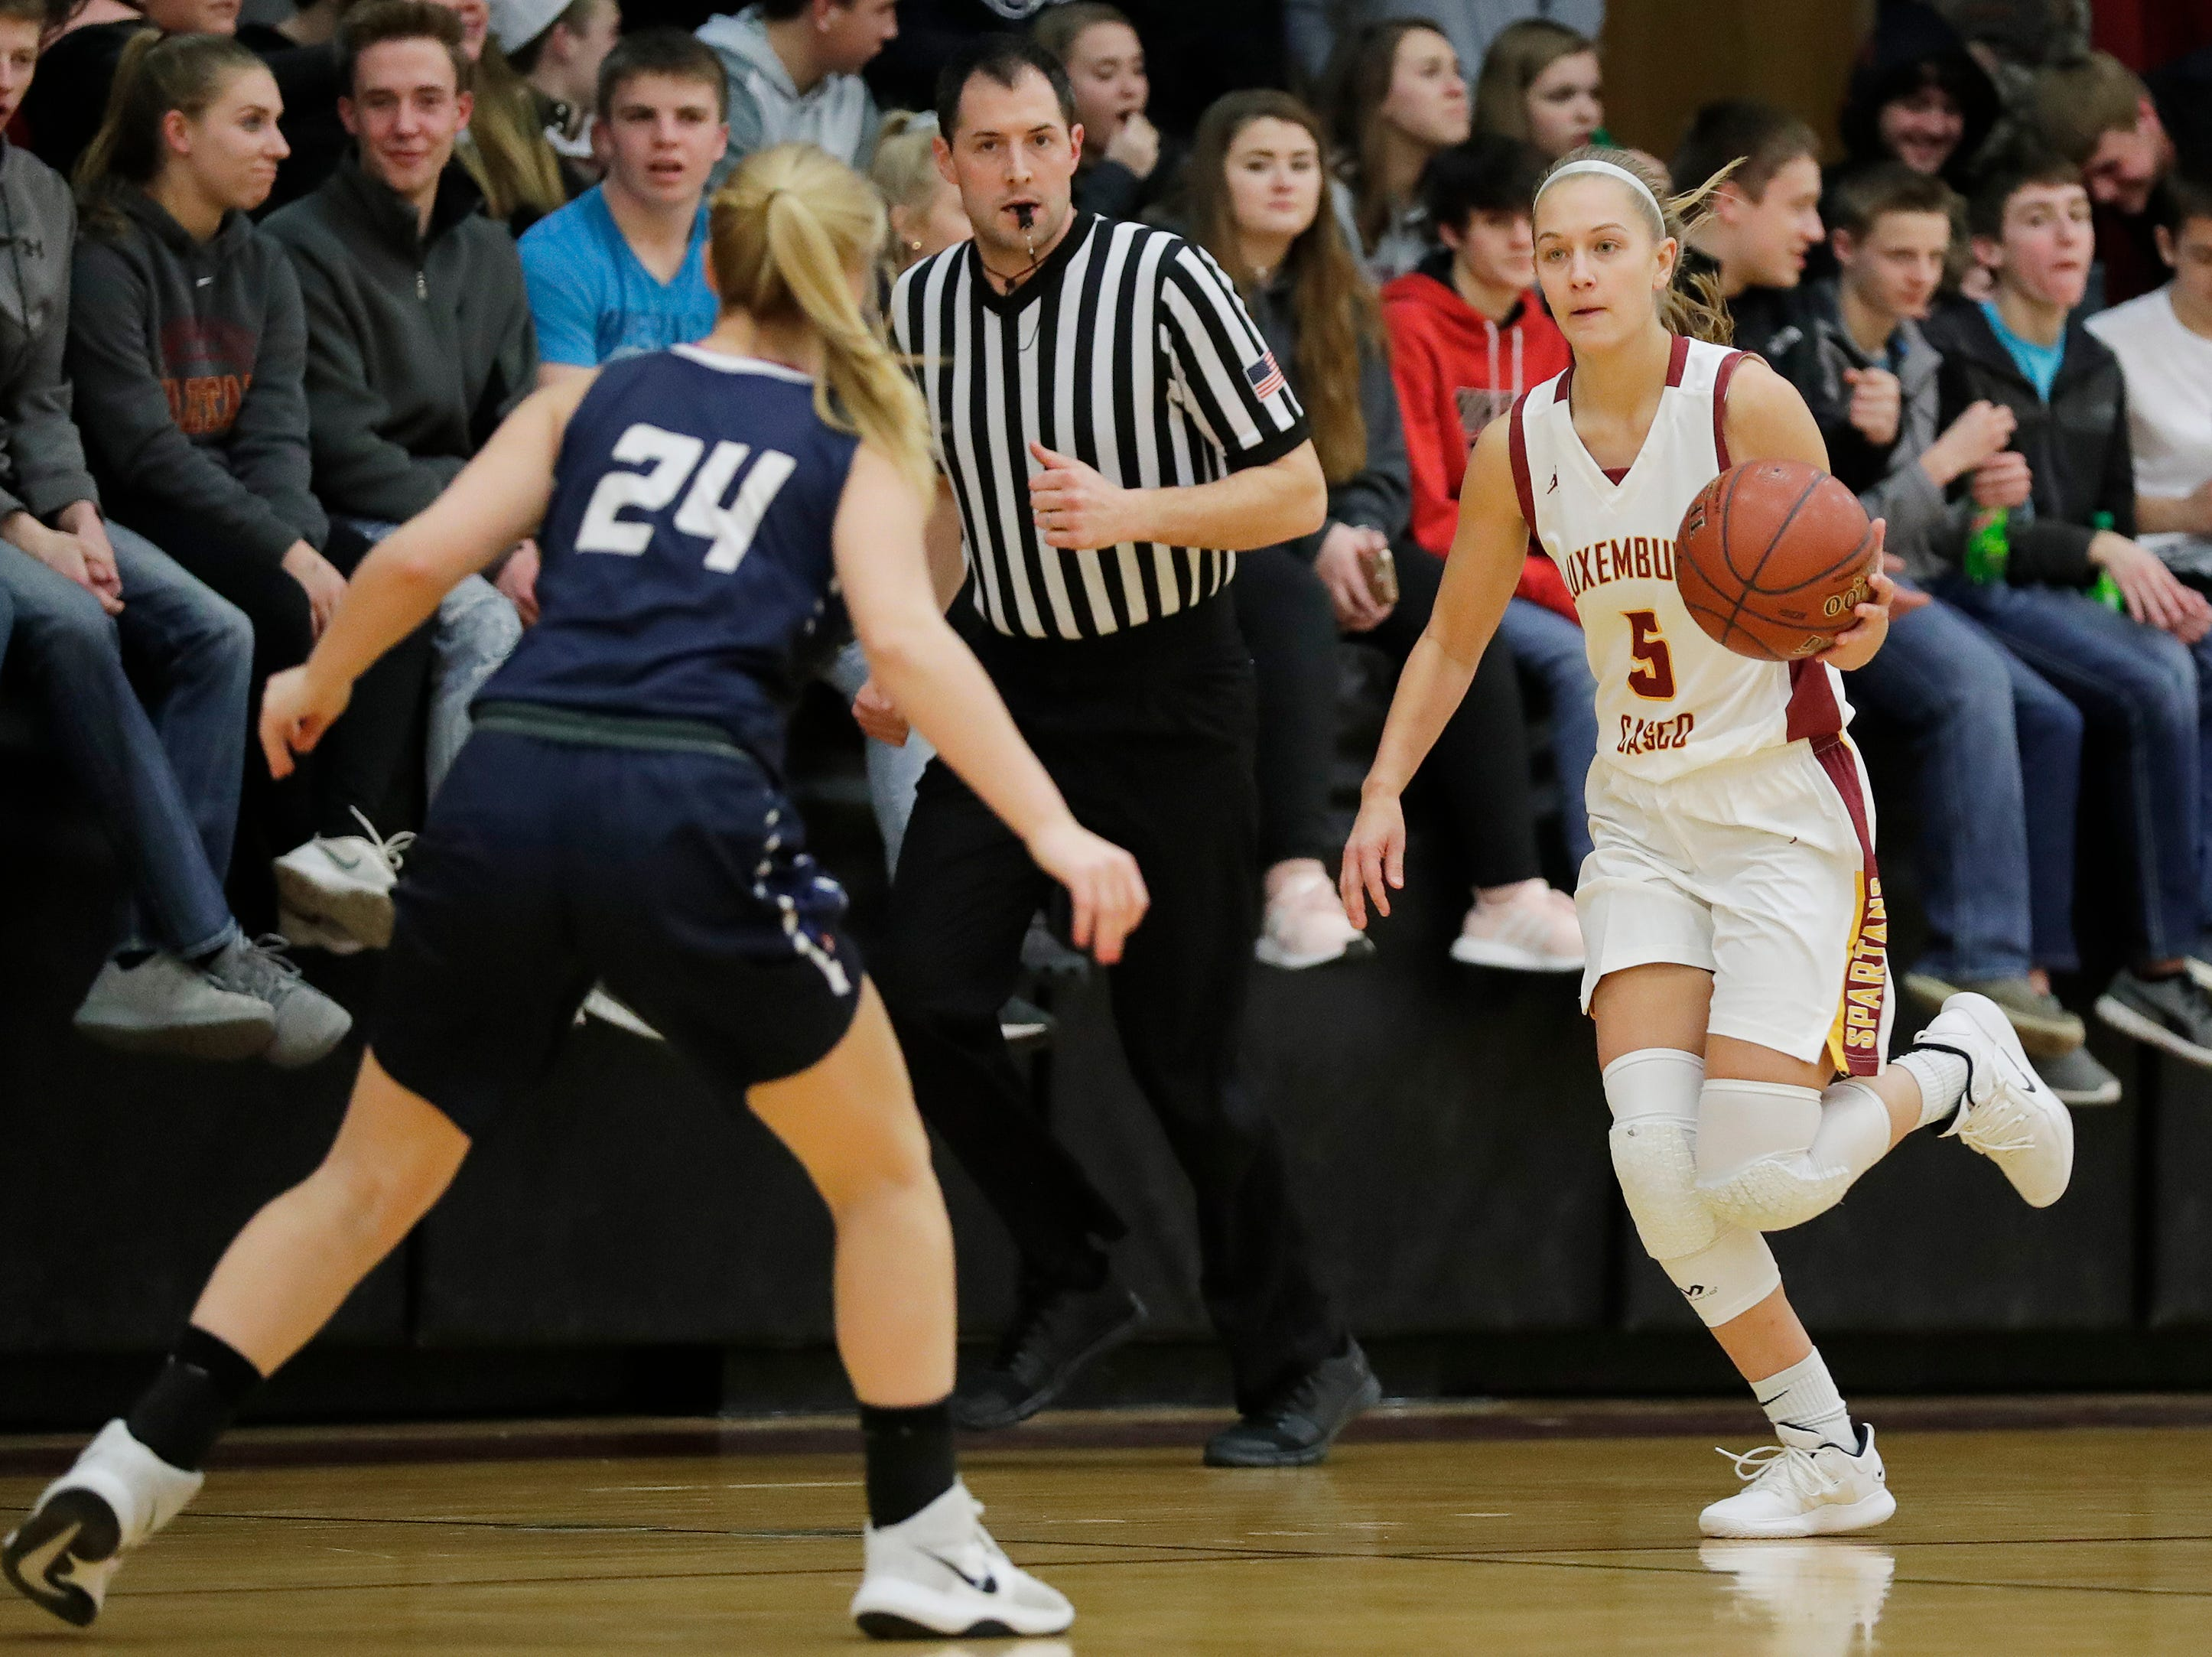 Luxemburg-Casco's Jenna Jorgensen (5) brings the ball up the court against Waupaca in a girls basketball game at Luxemburg-Casco high school on Thursday, January 10, 2019 in Luxemburg, Wis.